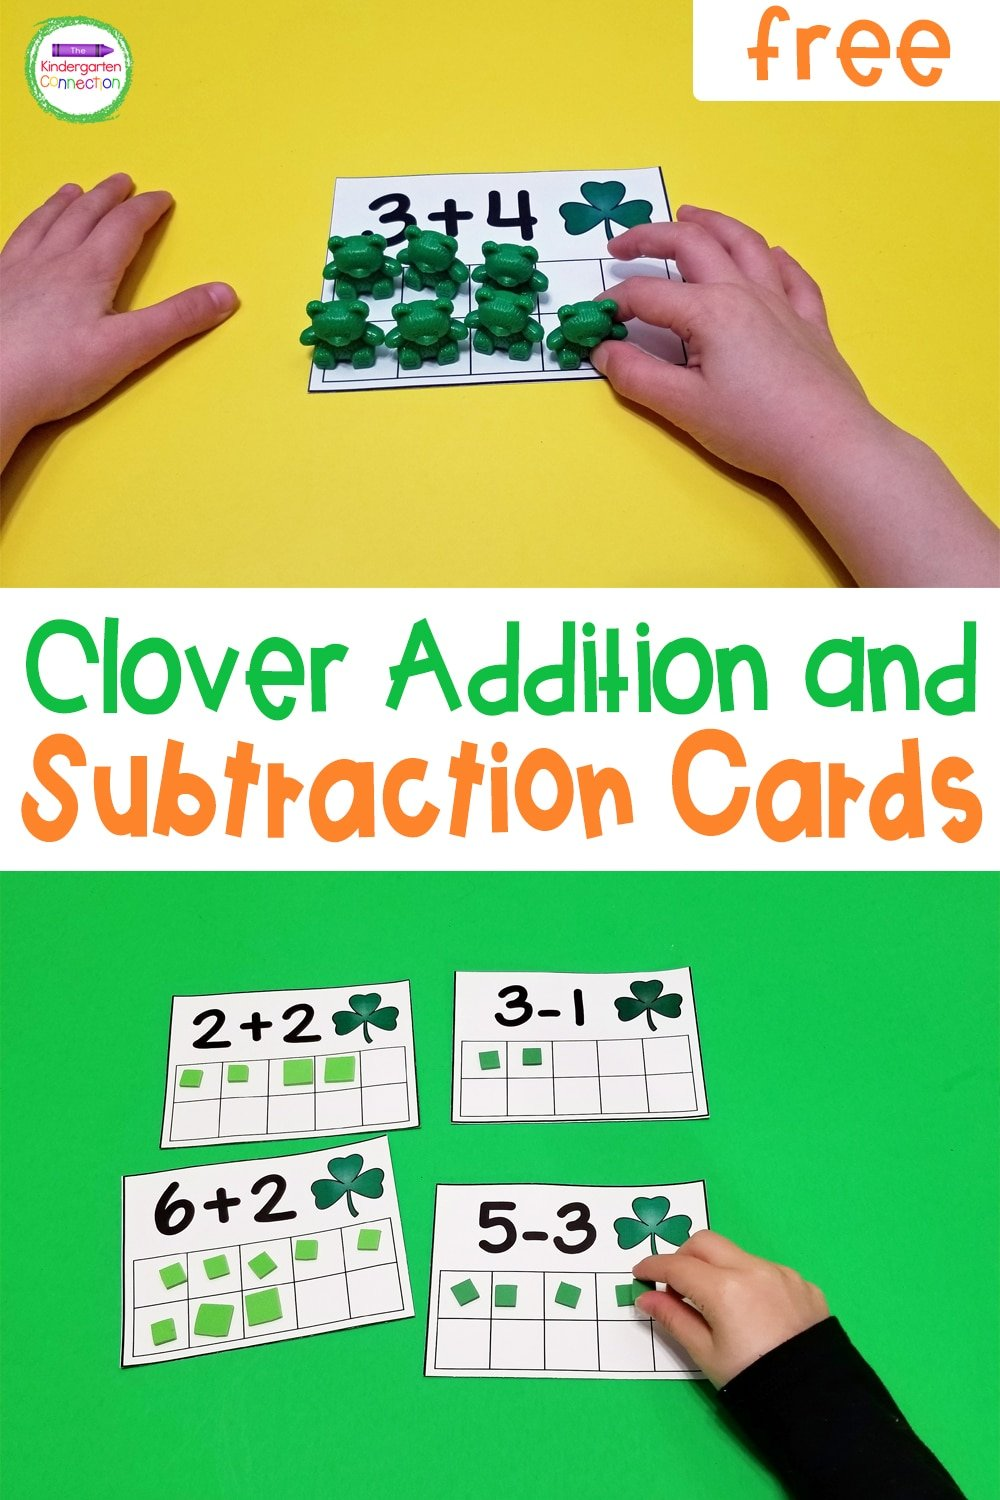 Kindergarten Connection promo image for clover decorated addition and subtraction cards